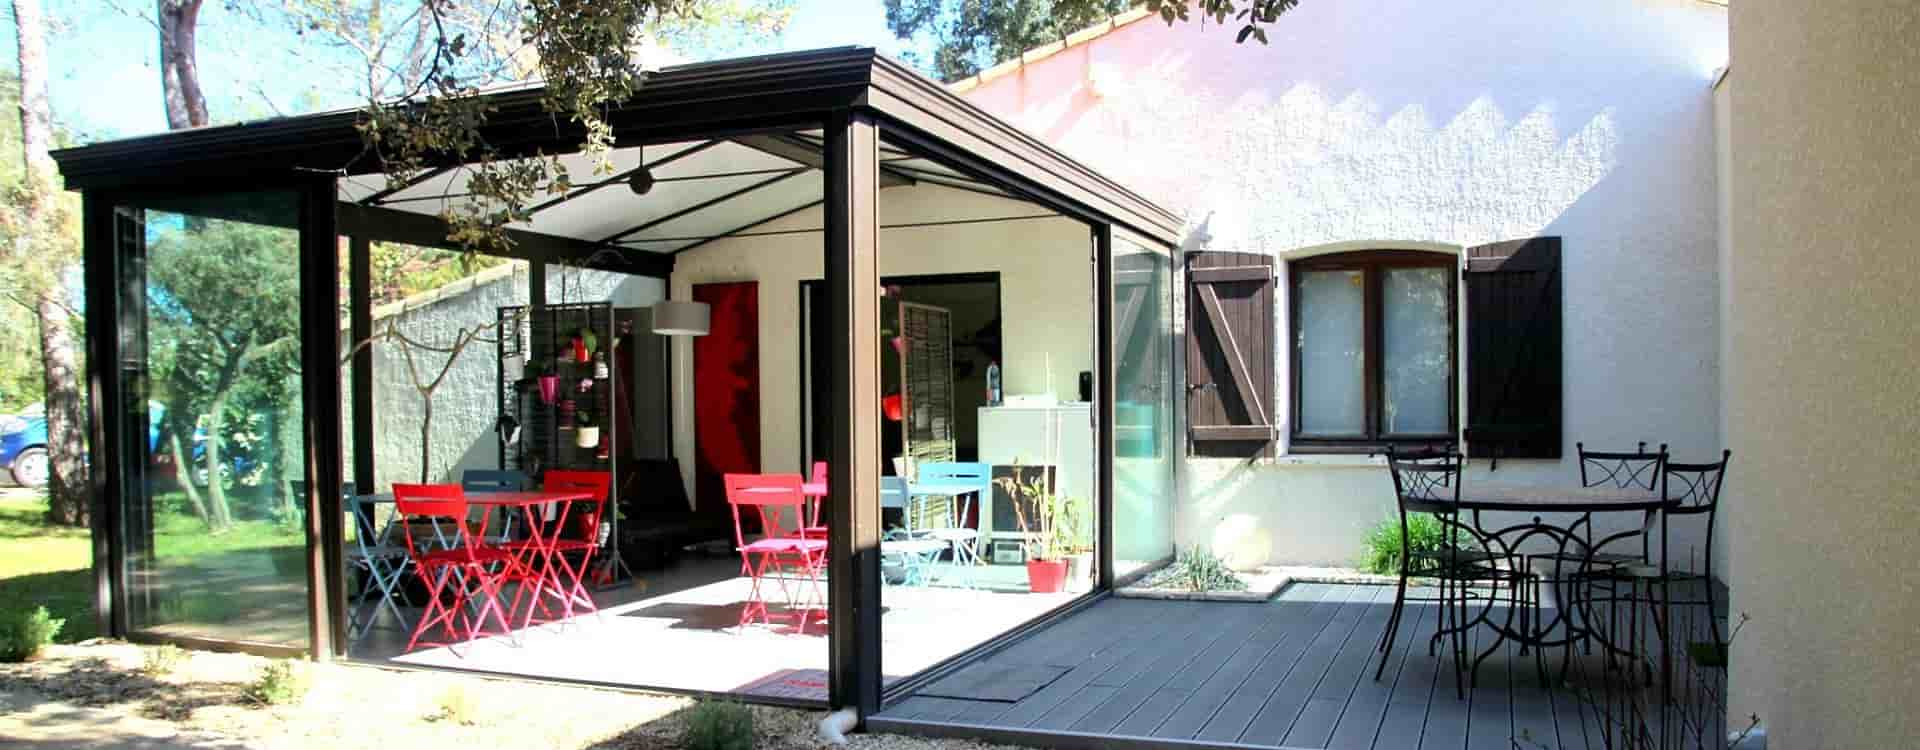 veranda-exterieure-baies-vitrees-repas-coin-lecture-maison-chambres-hotes-montpellier